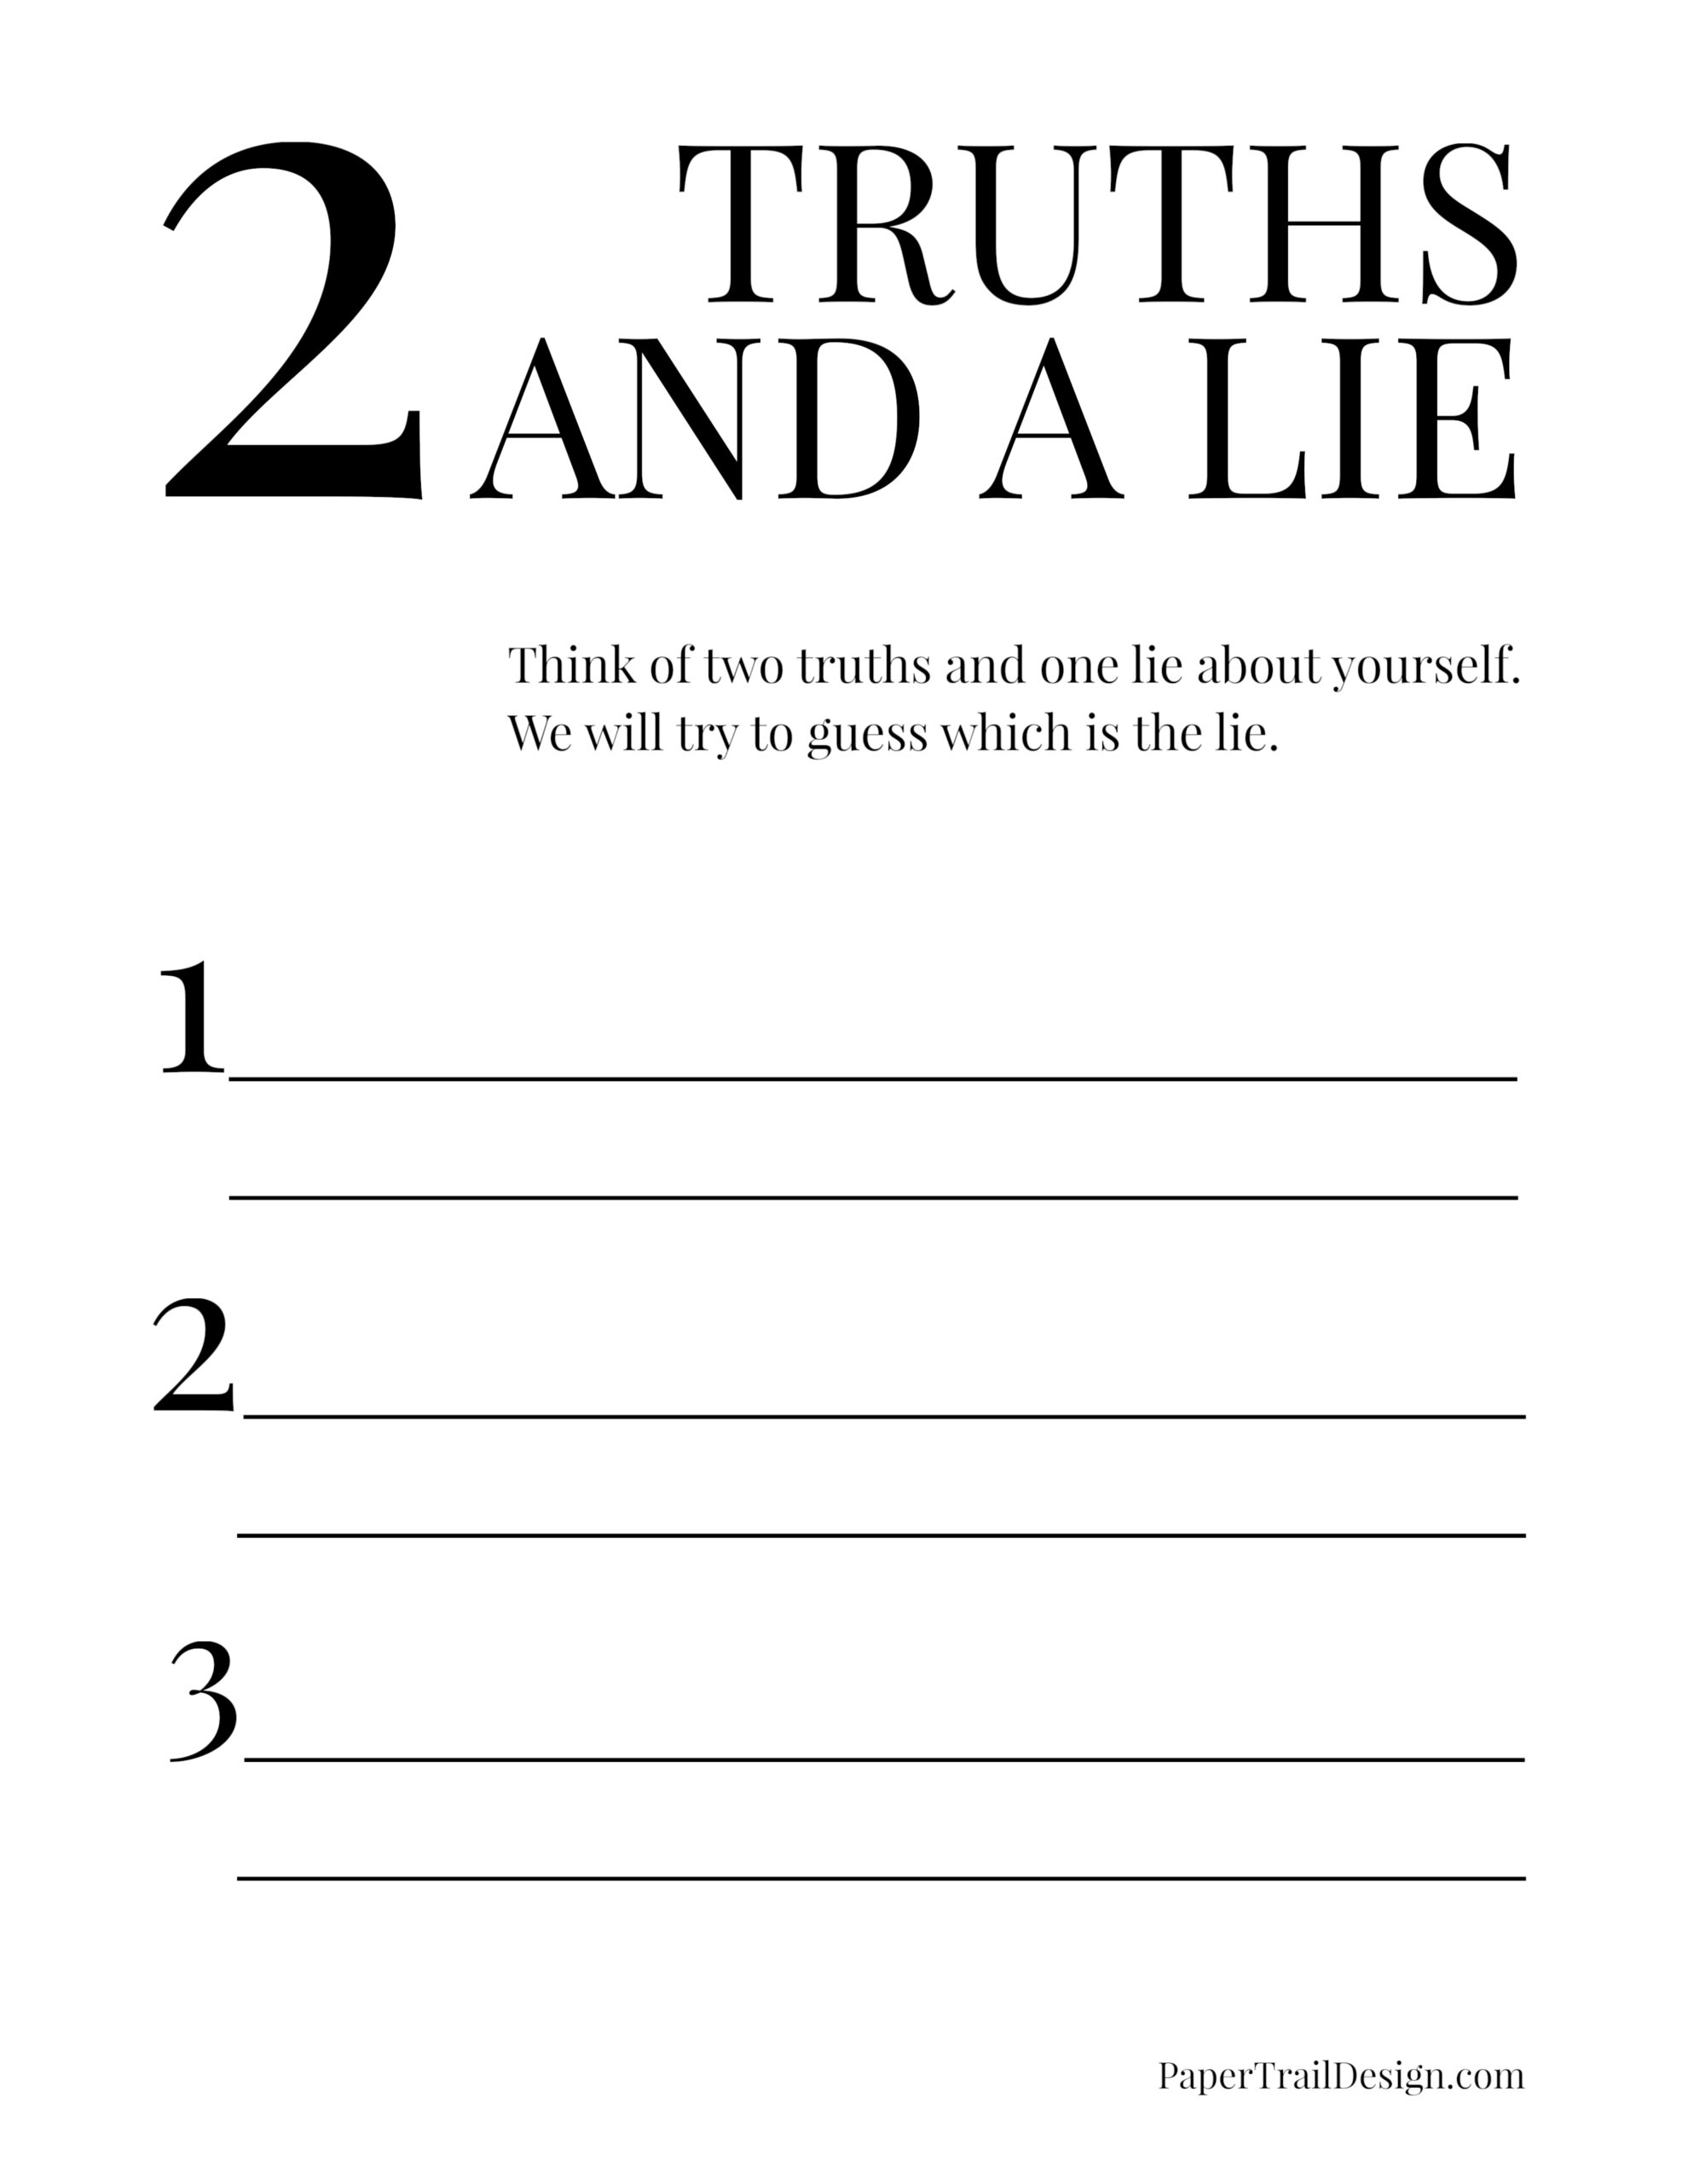 Two Truths And A Lie Game Free Printable